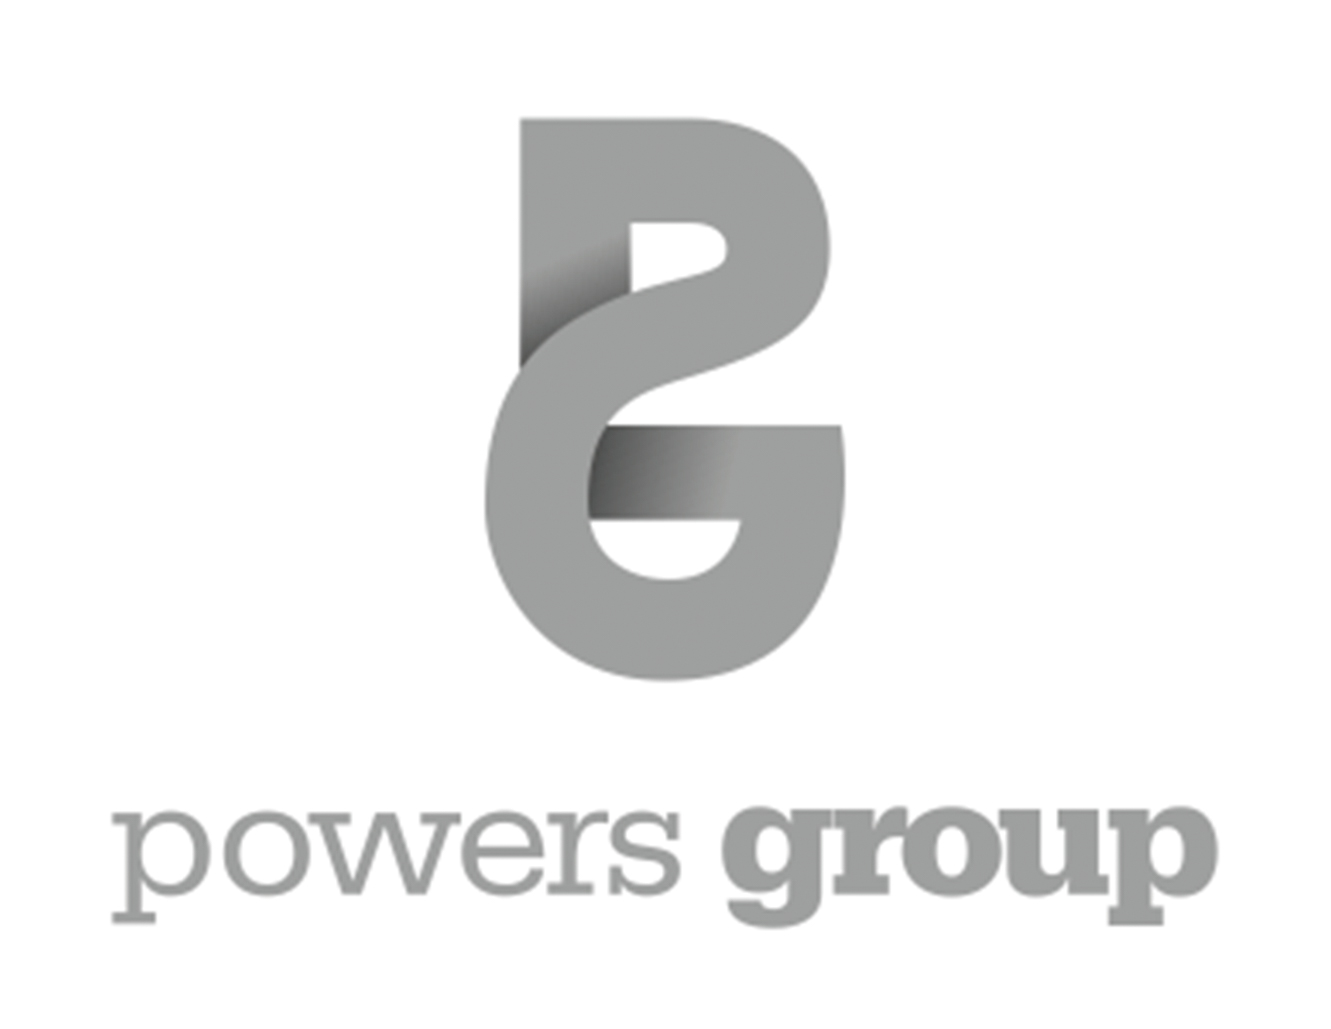 POWERS GROUP LLC